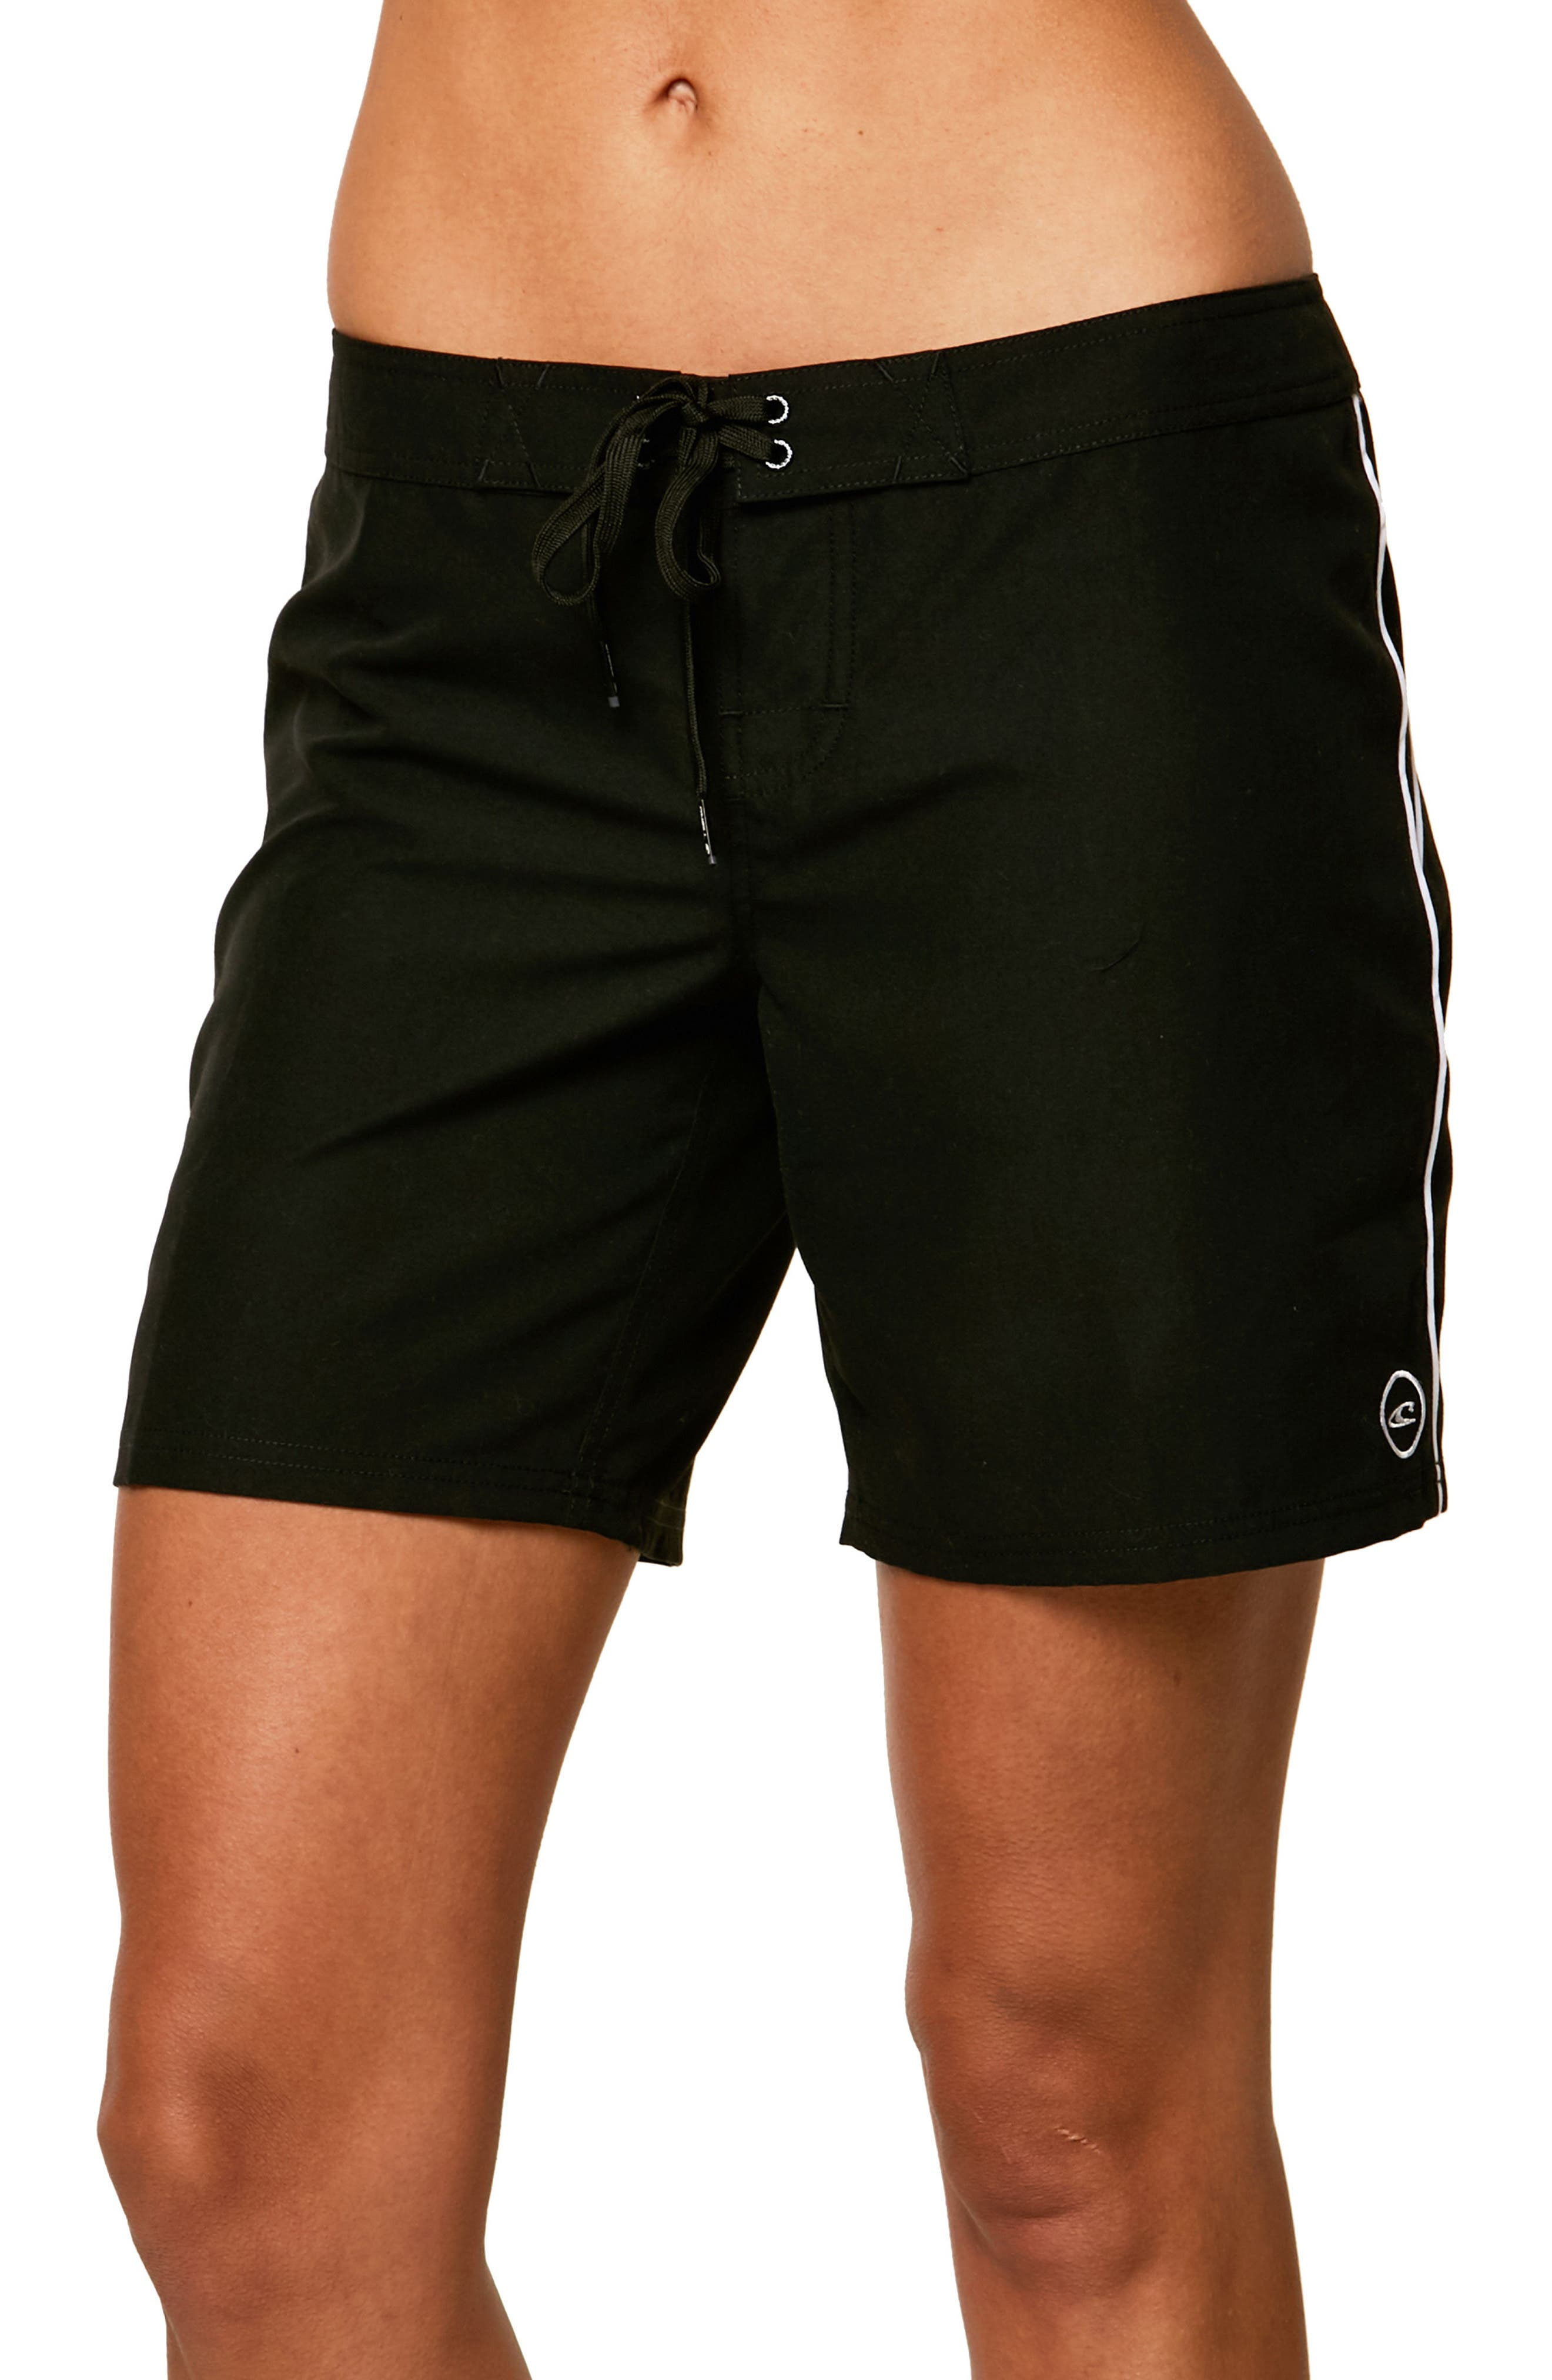 Salt Water Board Shorts,                         Main,                         color, Black